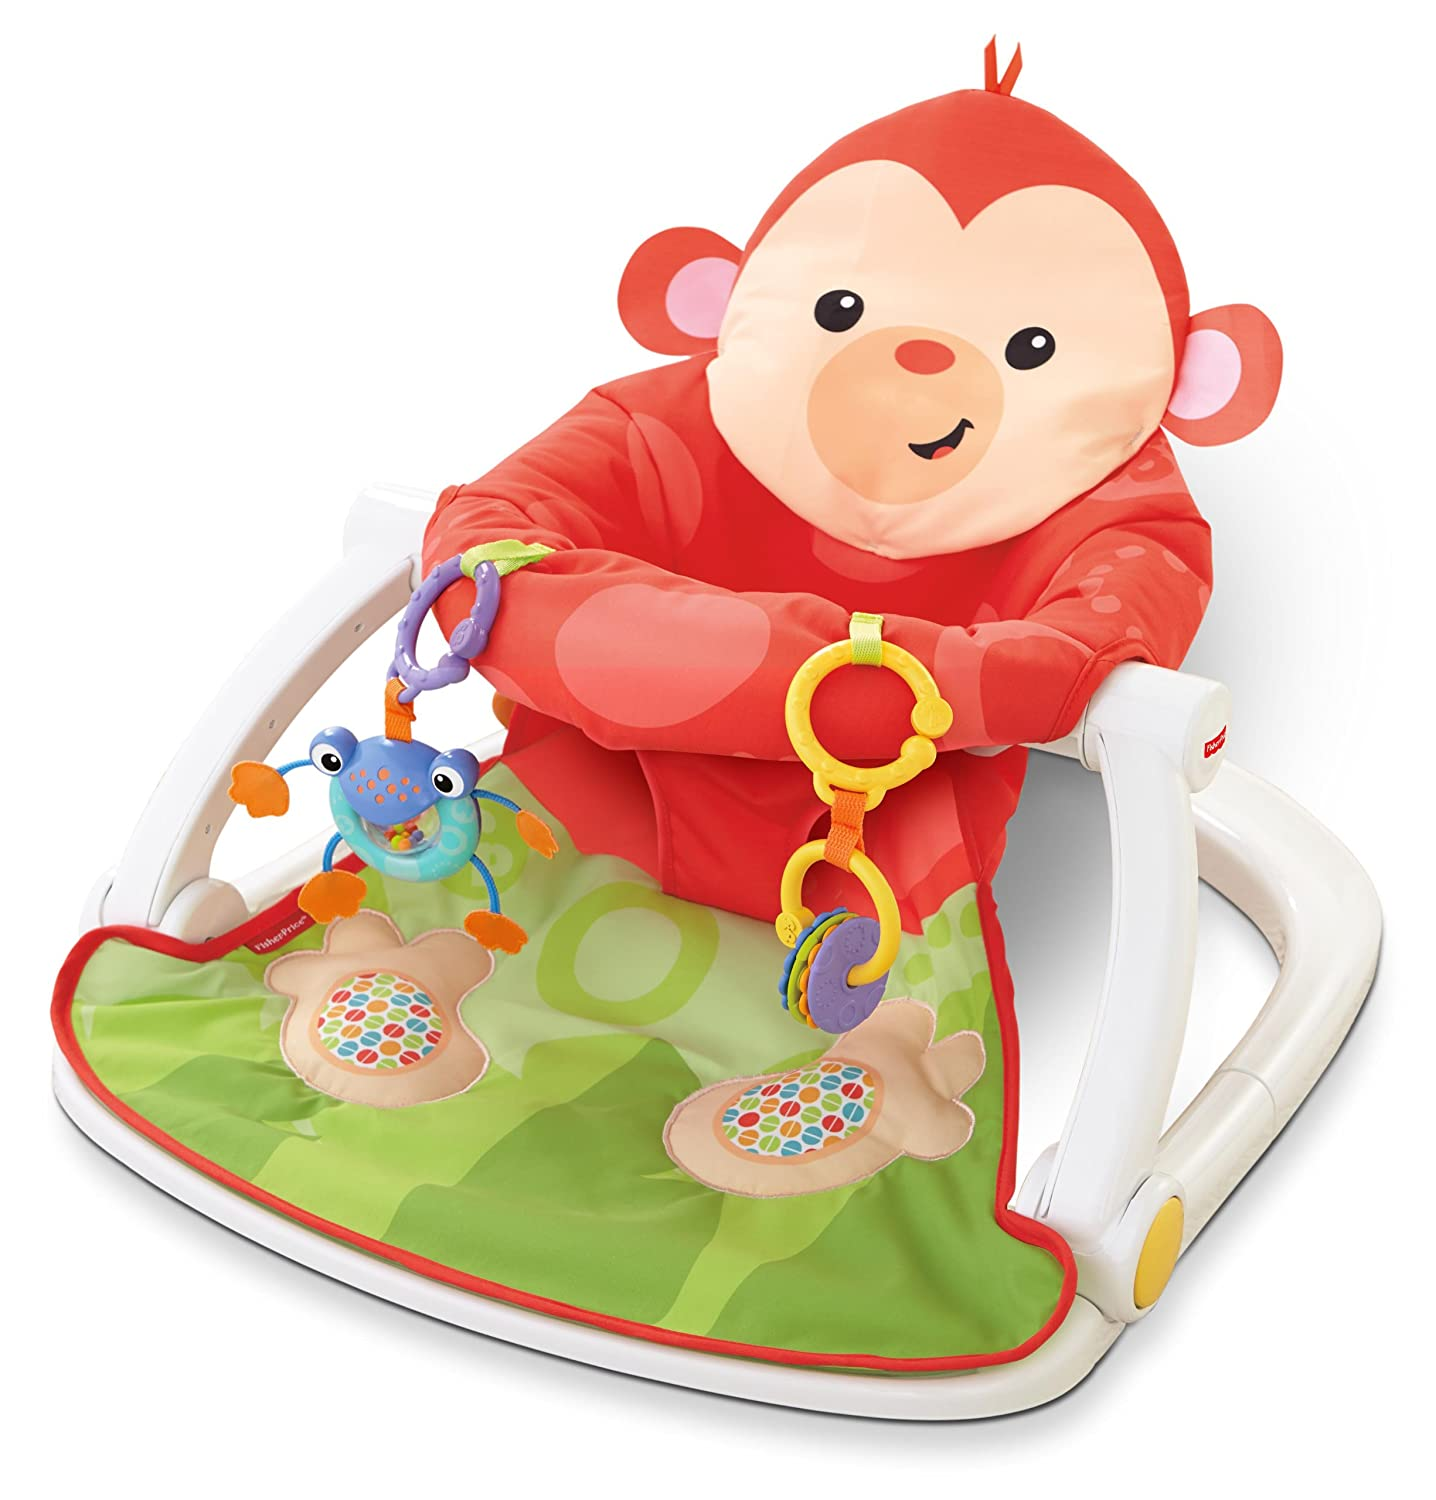 Baby Floor Seat FISHER PRICE Sit Me Up Infant Activity